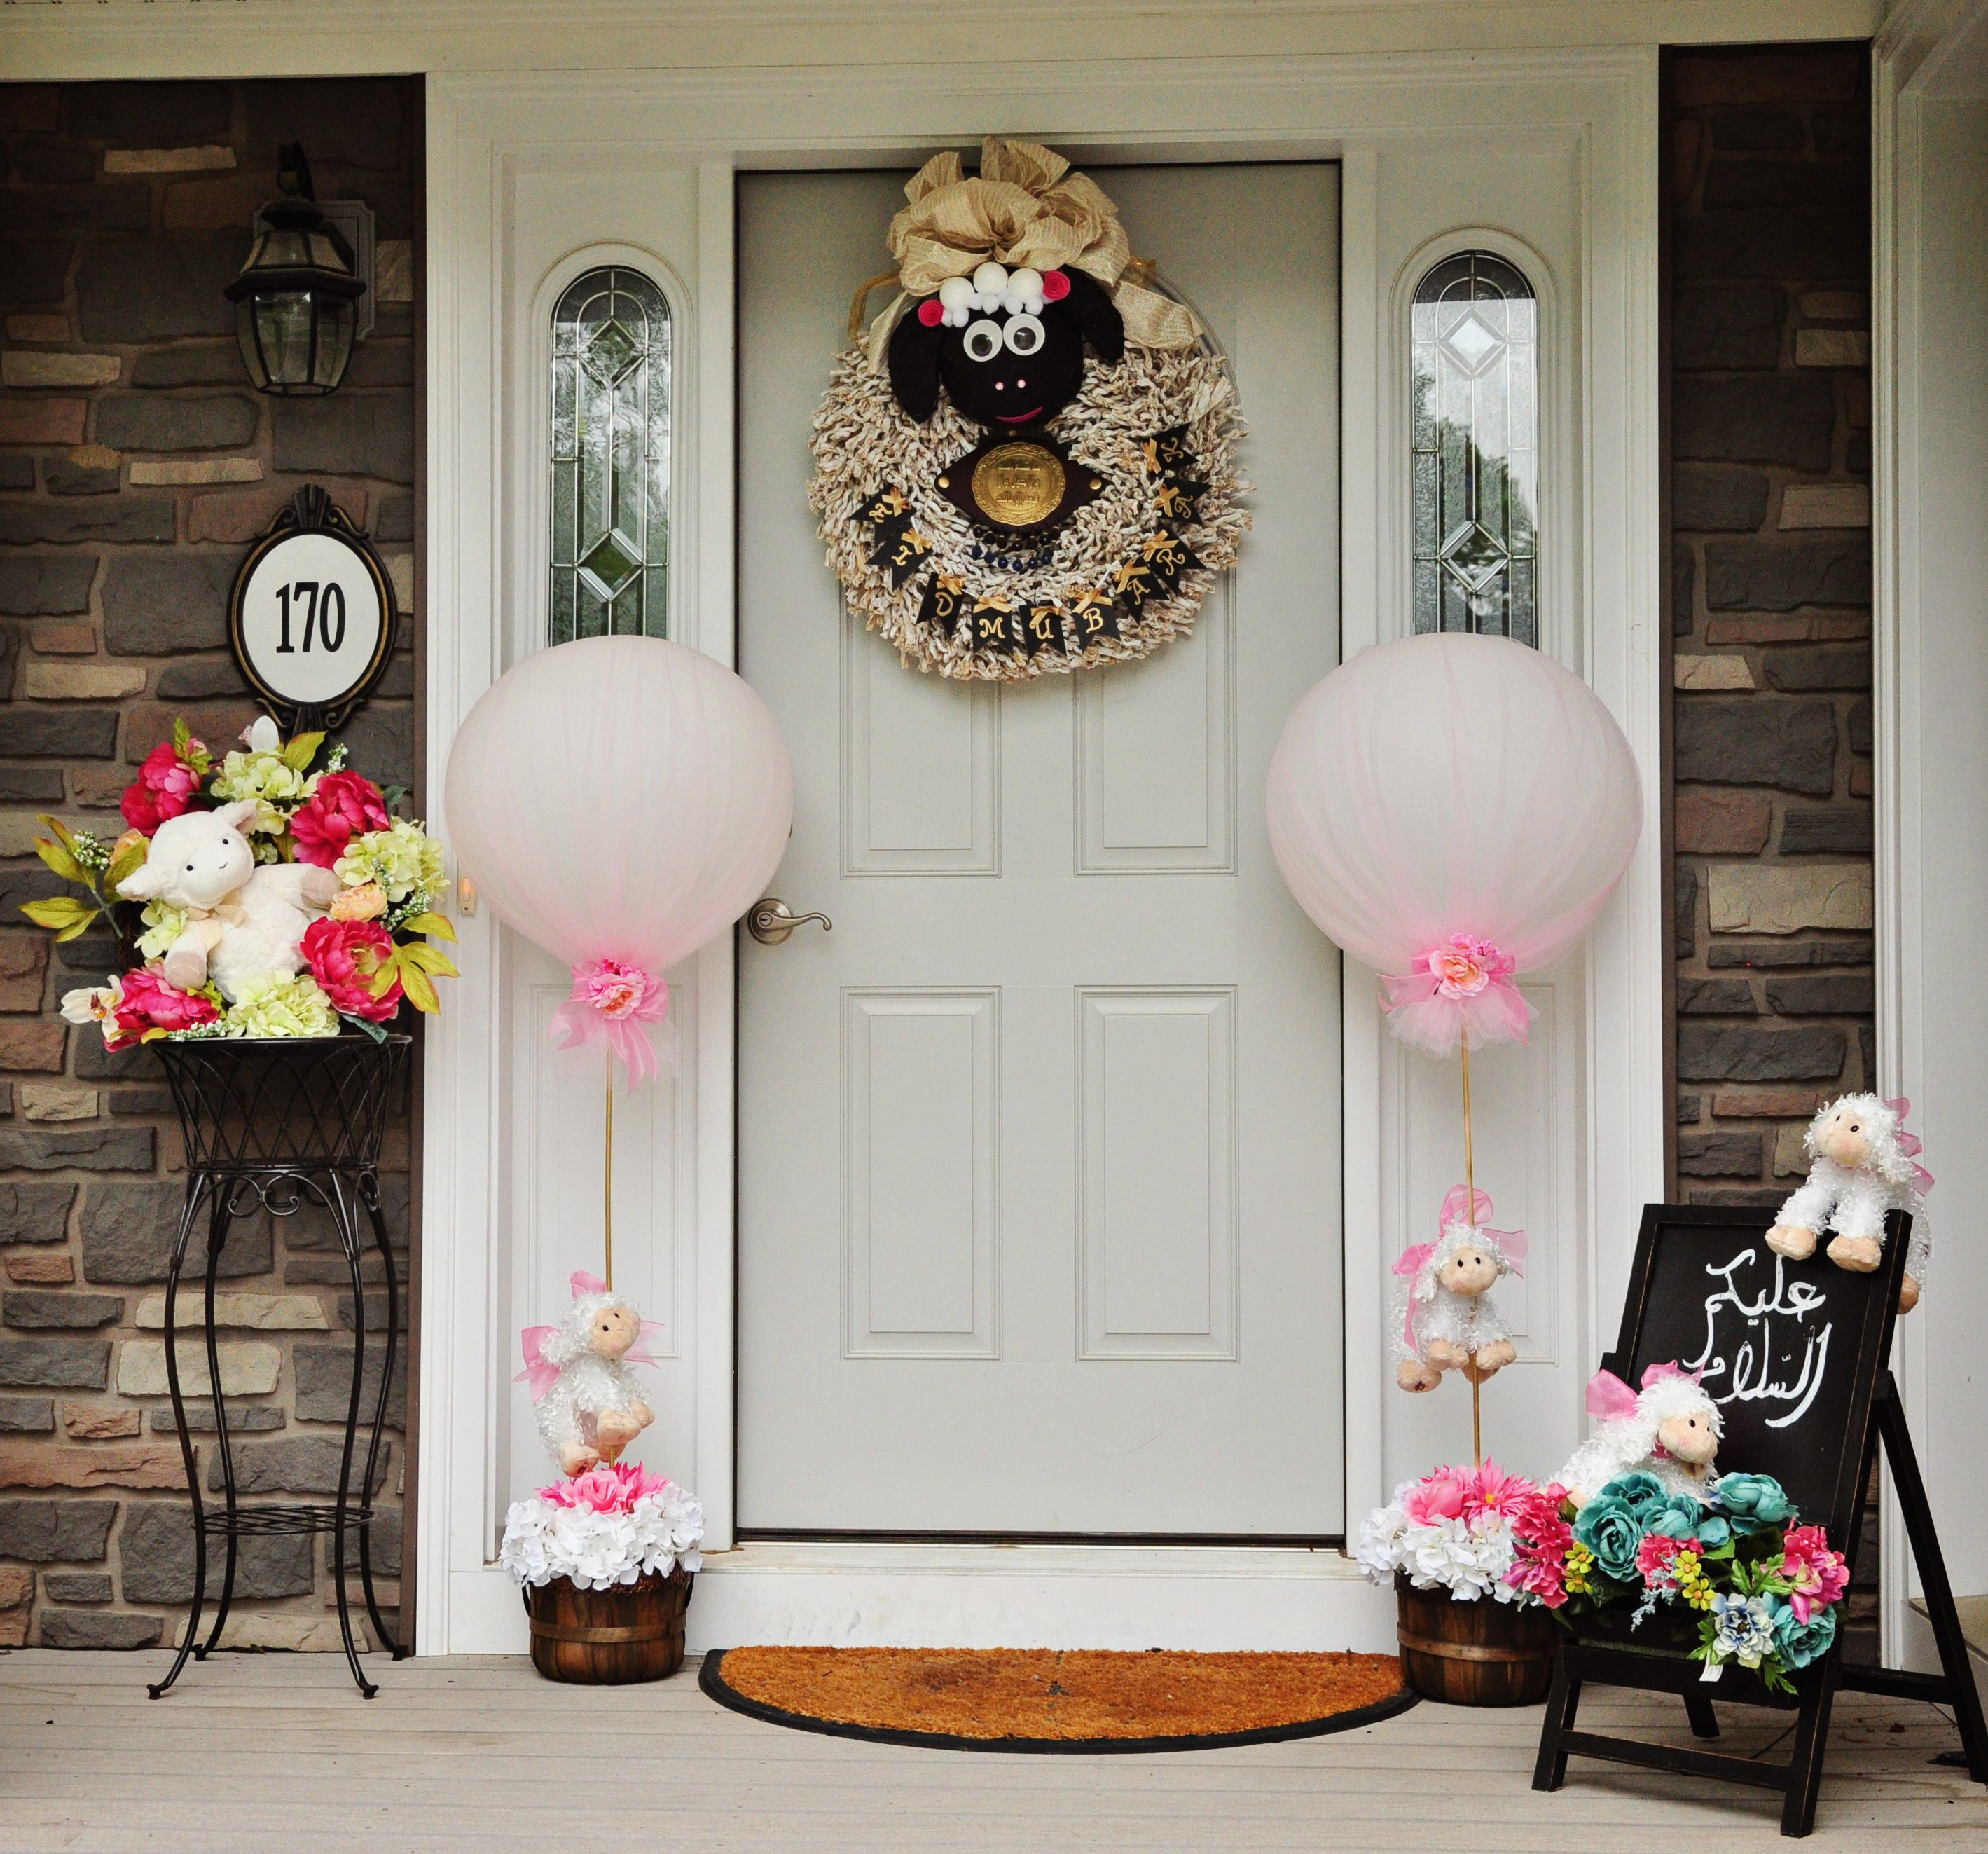 Eid Al Adha Decorations #Eid Al Adha #Wreath #Sheep #Door